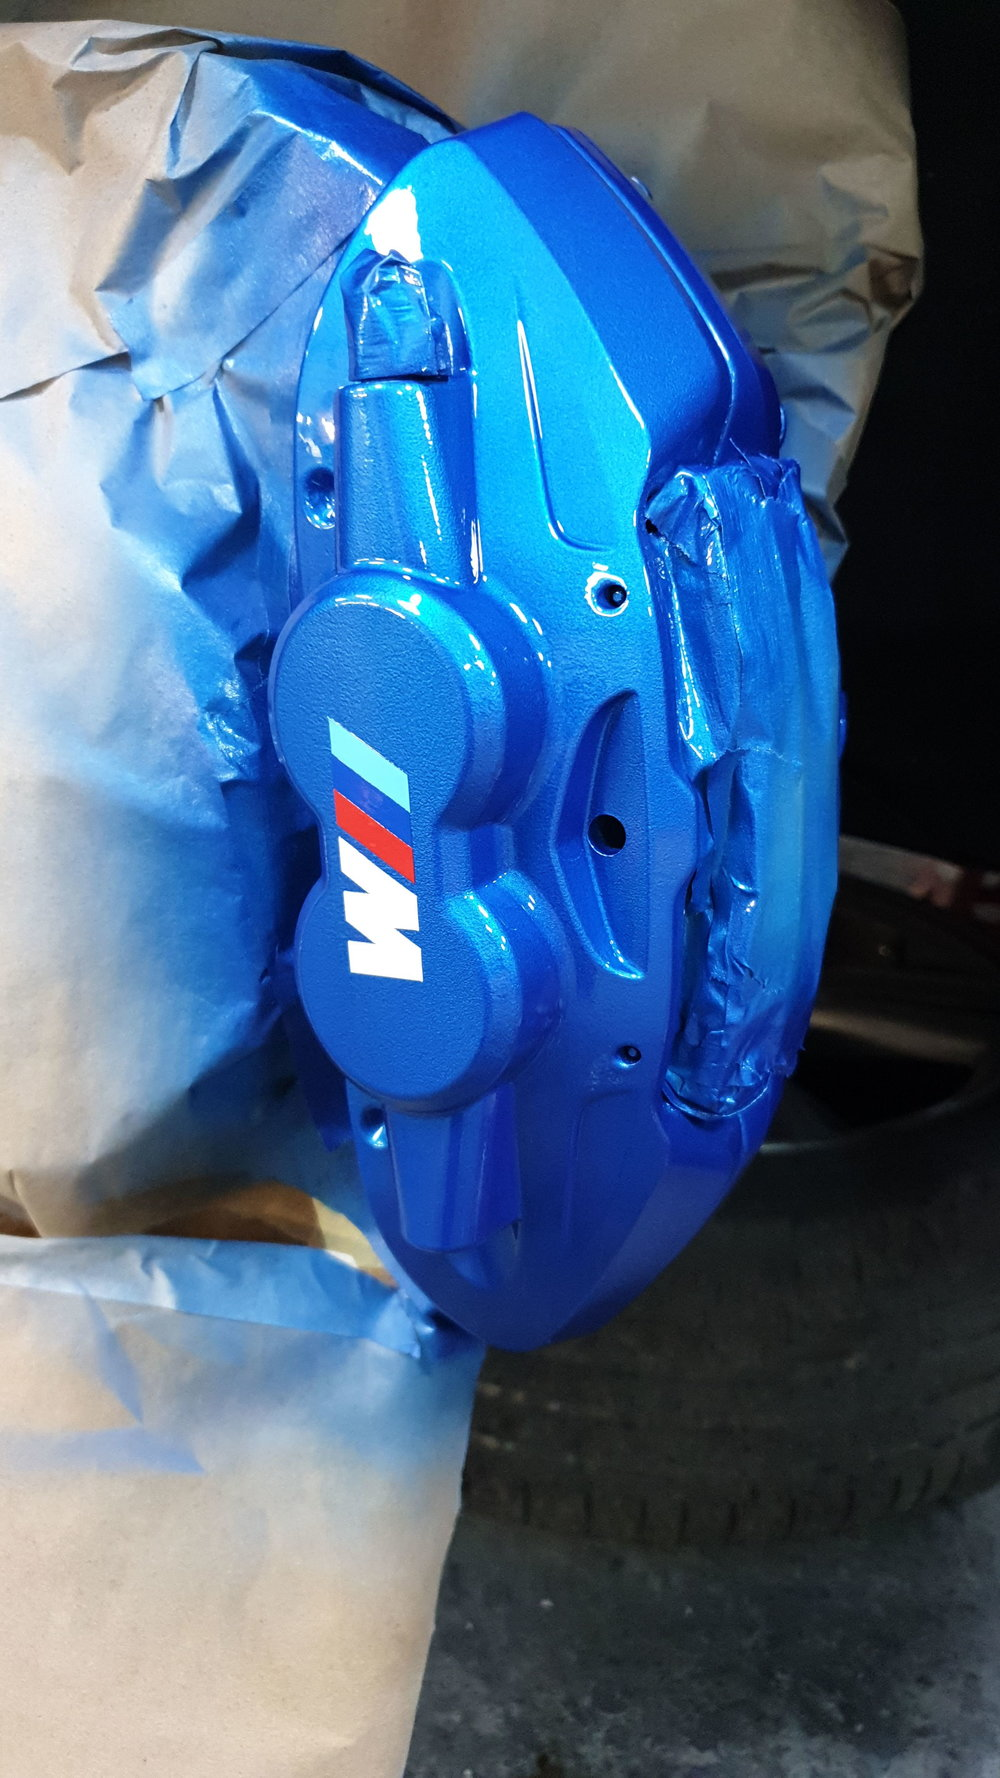 BMW 4 SERIES CALIPERS IN CUSTOM PEARL BLUE WITH CUSTOM M SPORT DECALS